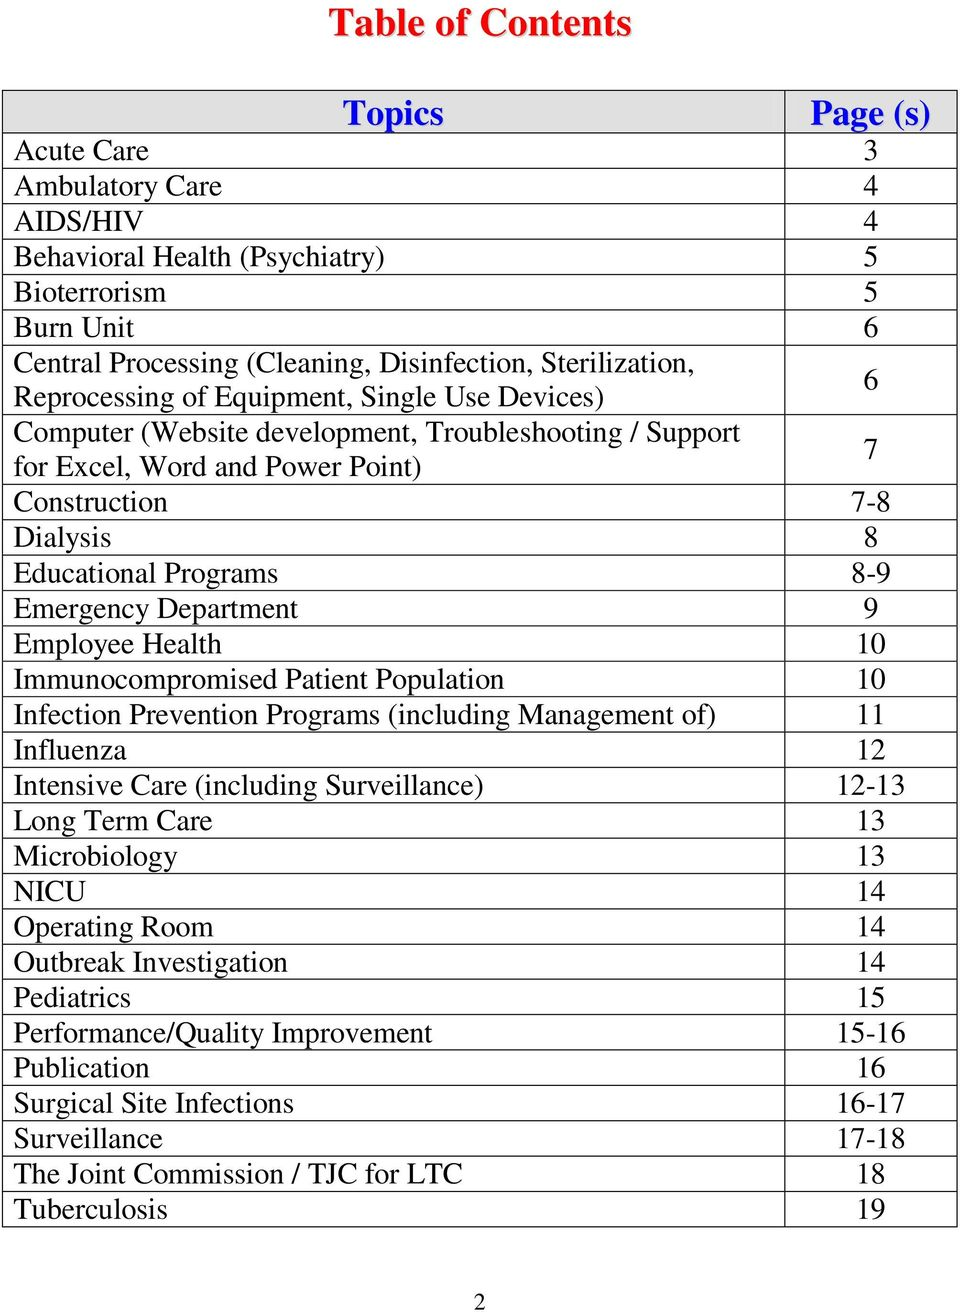 Emergency Department 9 Employee Health 10 Immunocompromised Patient Population 10 Infection Prevention Programs (including Management of) 11 Influenza 12 Intensive Care (including Surveillance) 12-13